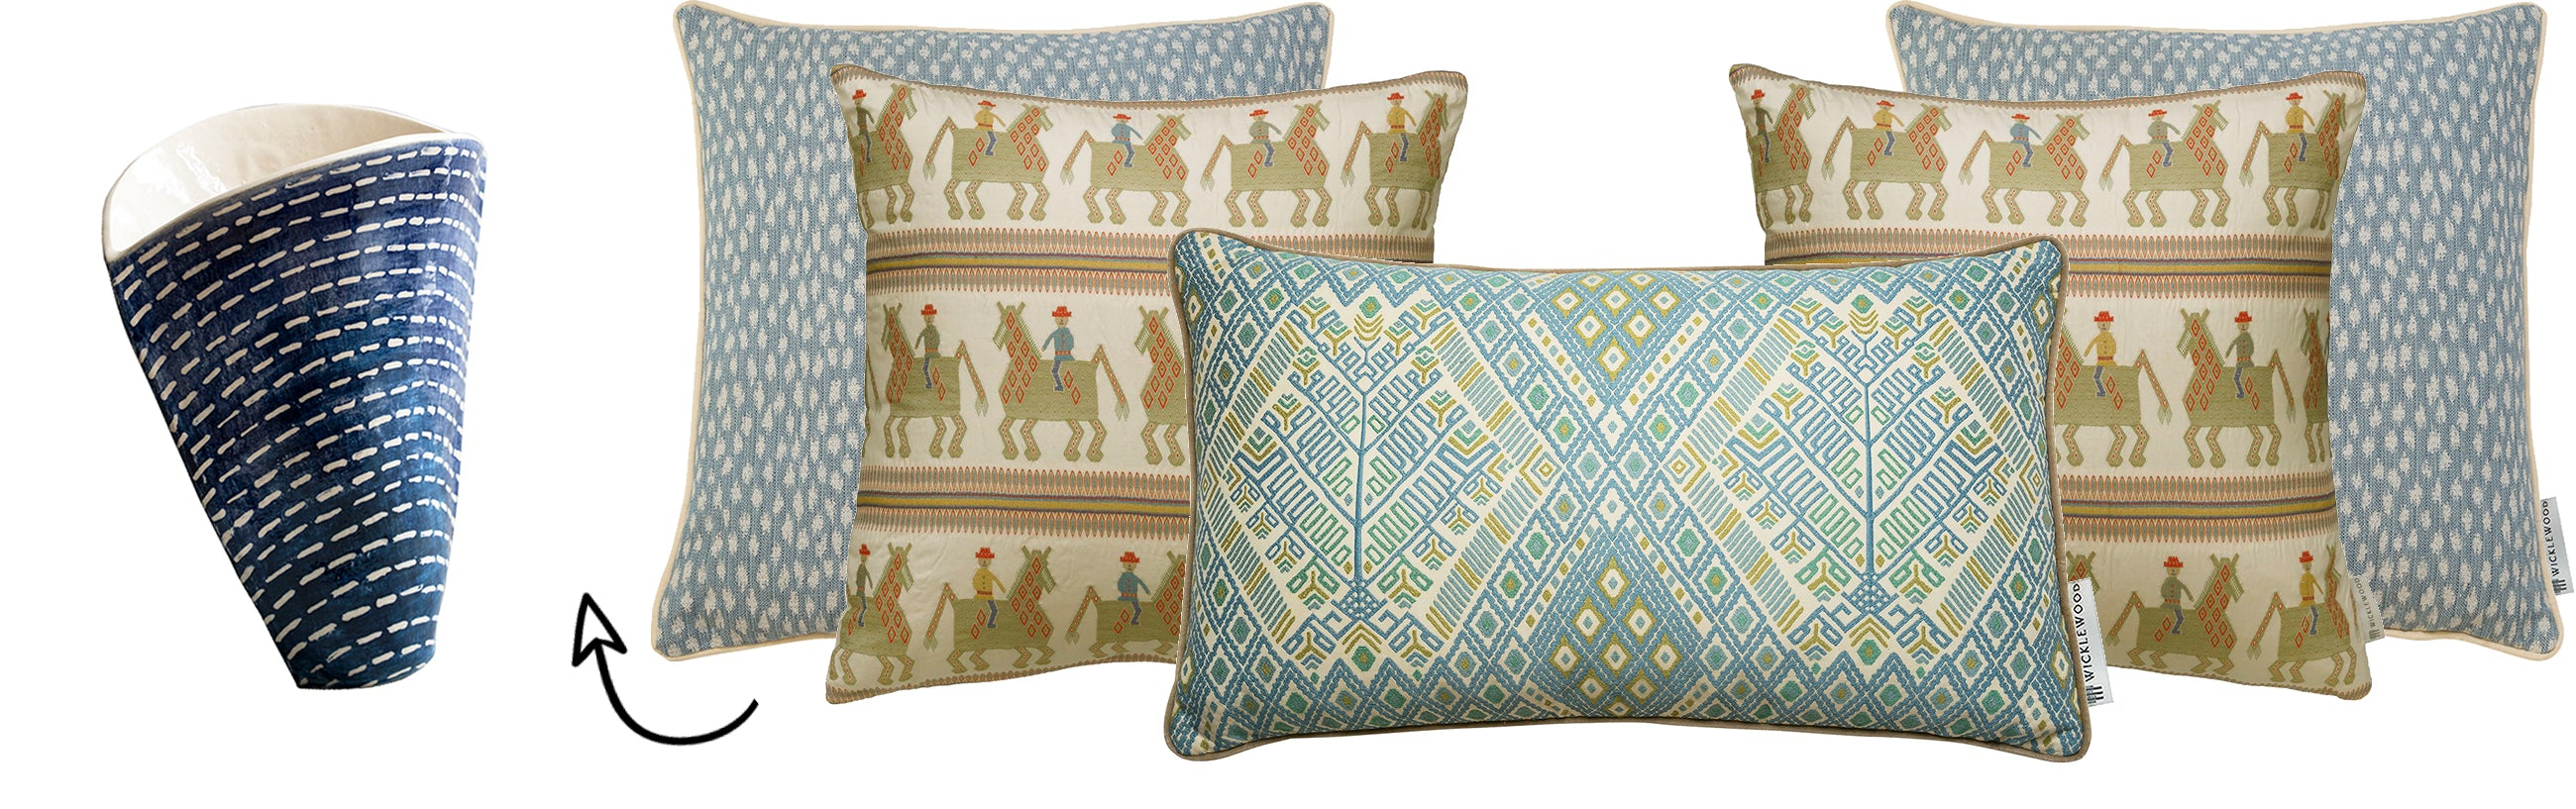 Wicklewood's top festive cushions combos, including this green scheme helping to inspire you to decorate your home differently this Holliday season.